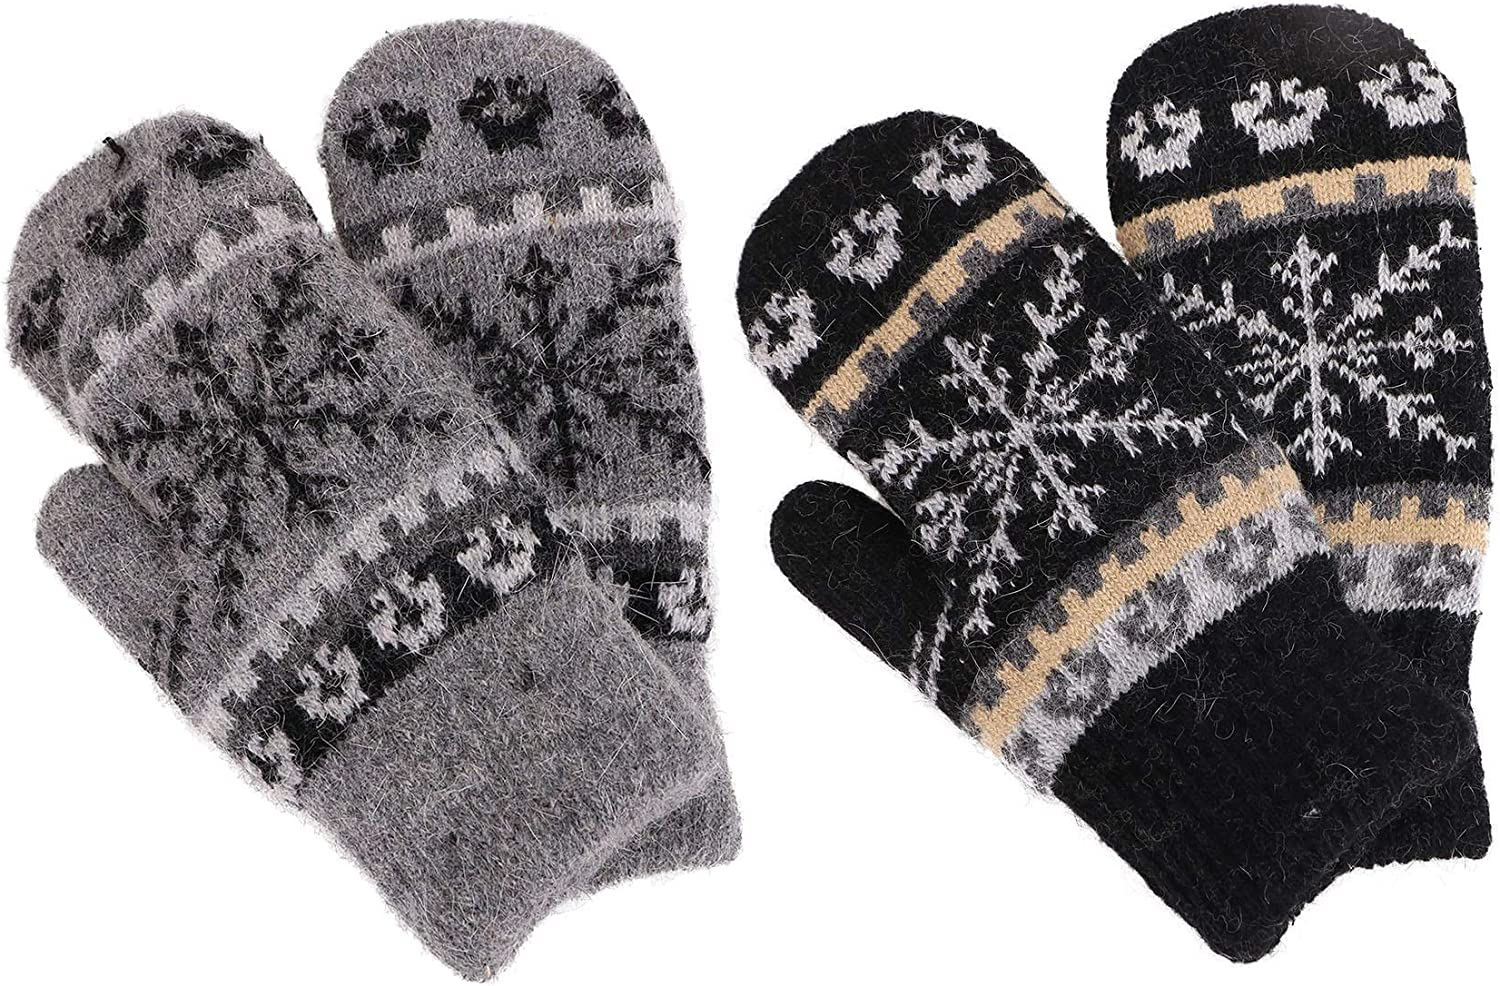 Women's Winter Fair Isle Knit Sherpa Lined Mittens  Set of 2 Pairs